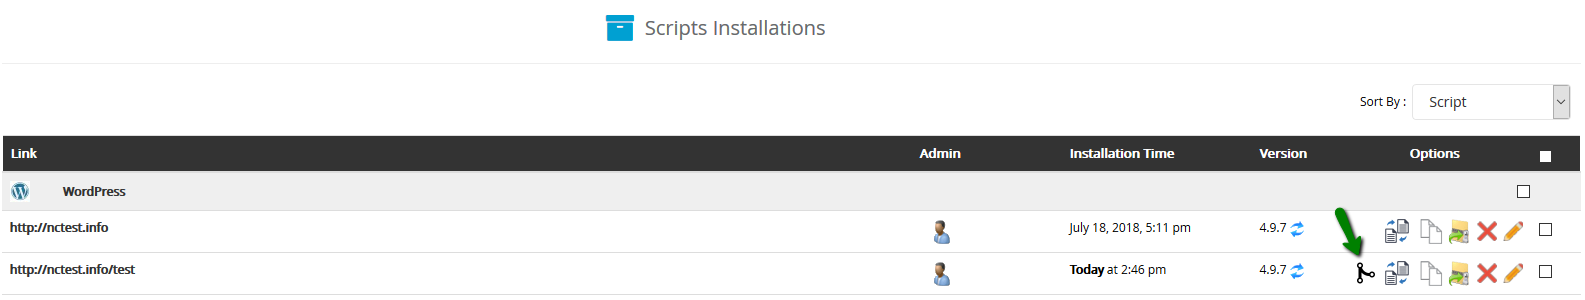 How to work with scripts in Softaculous - Hosting - Namecheap com